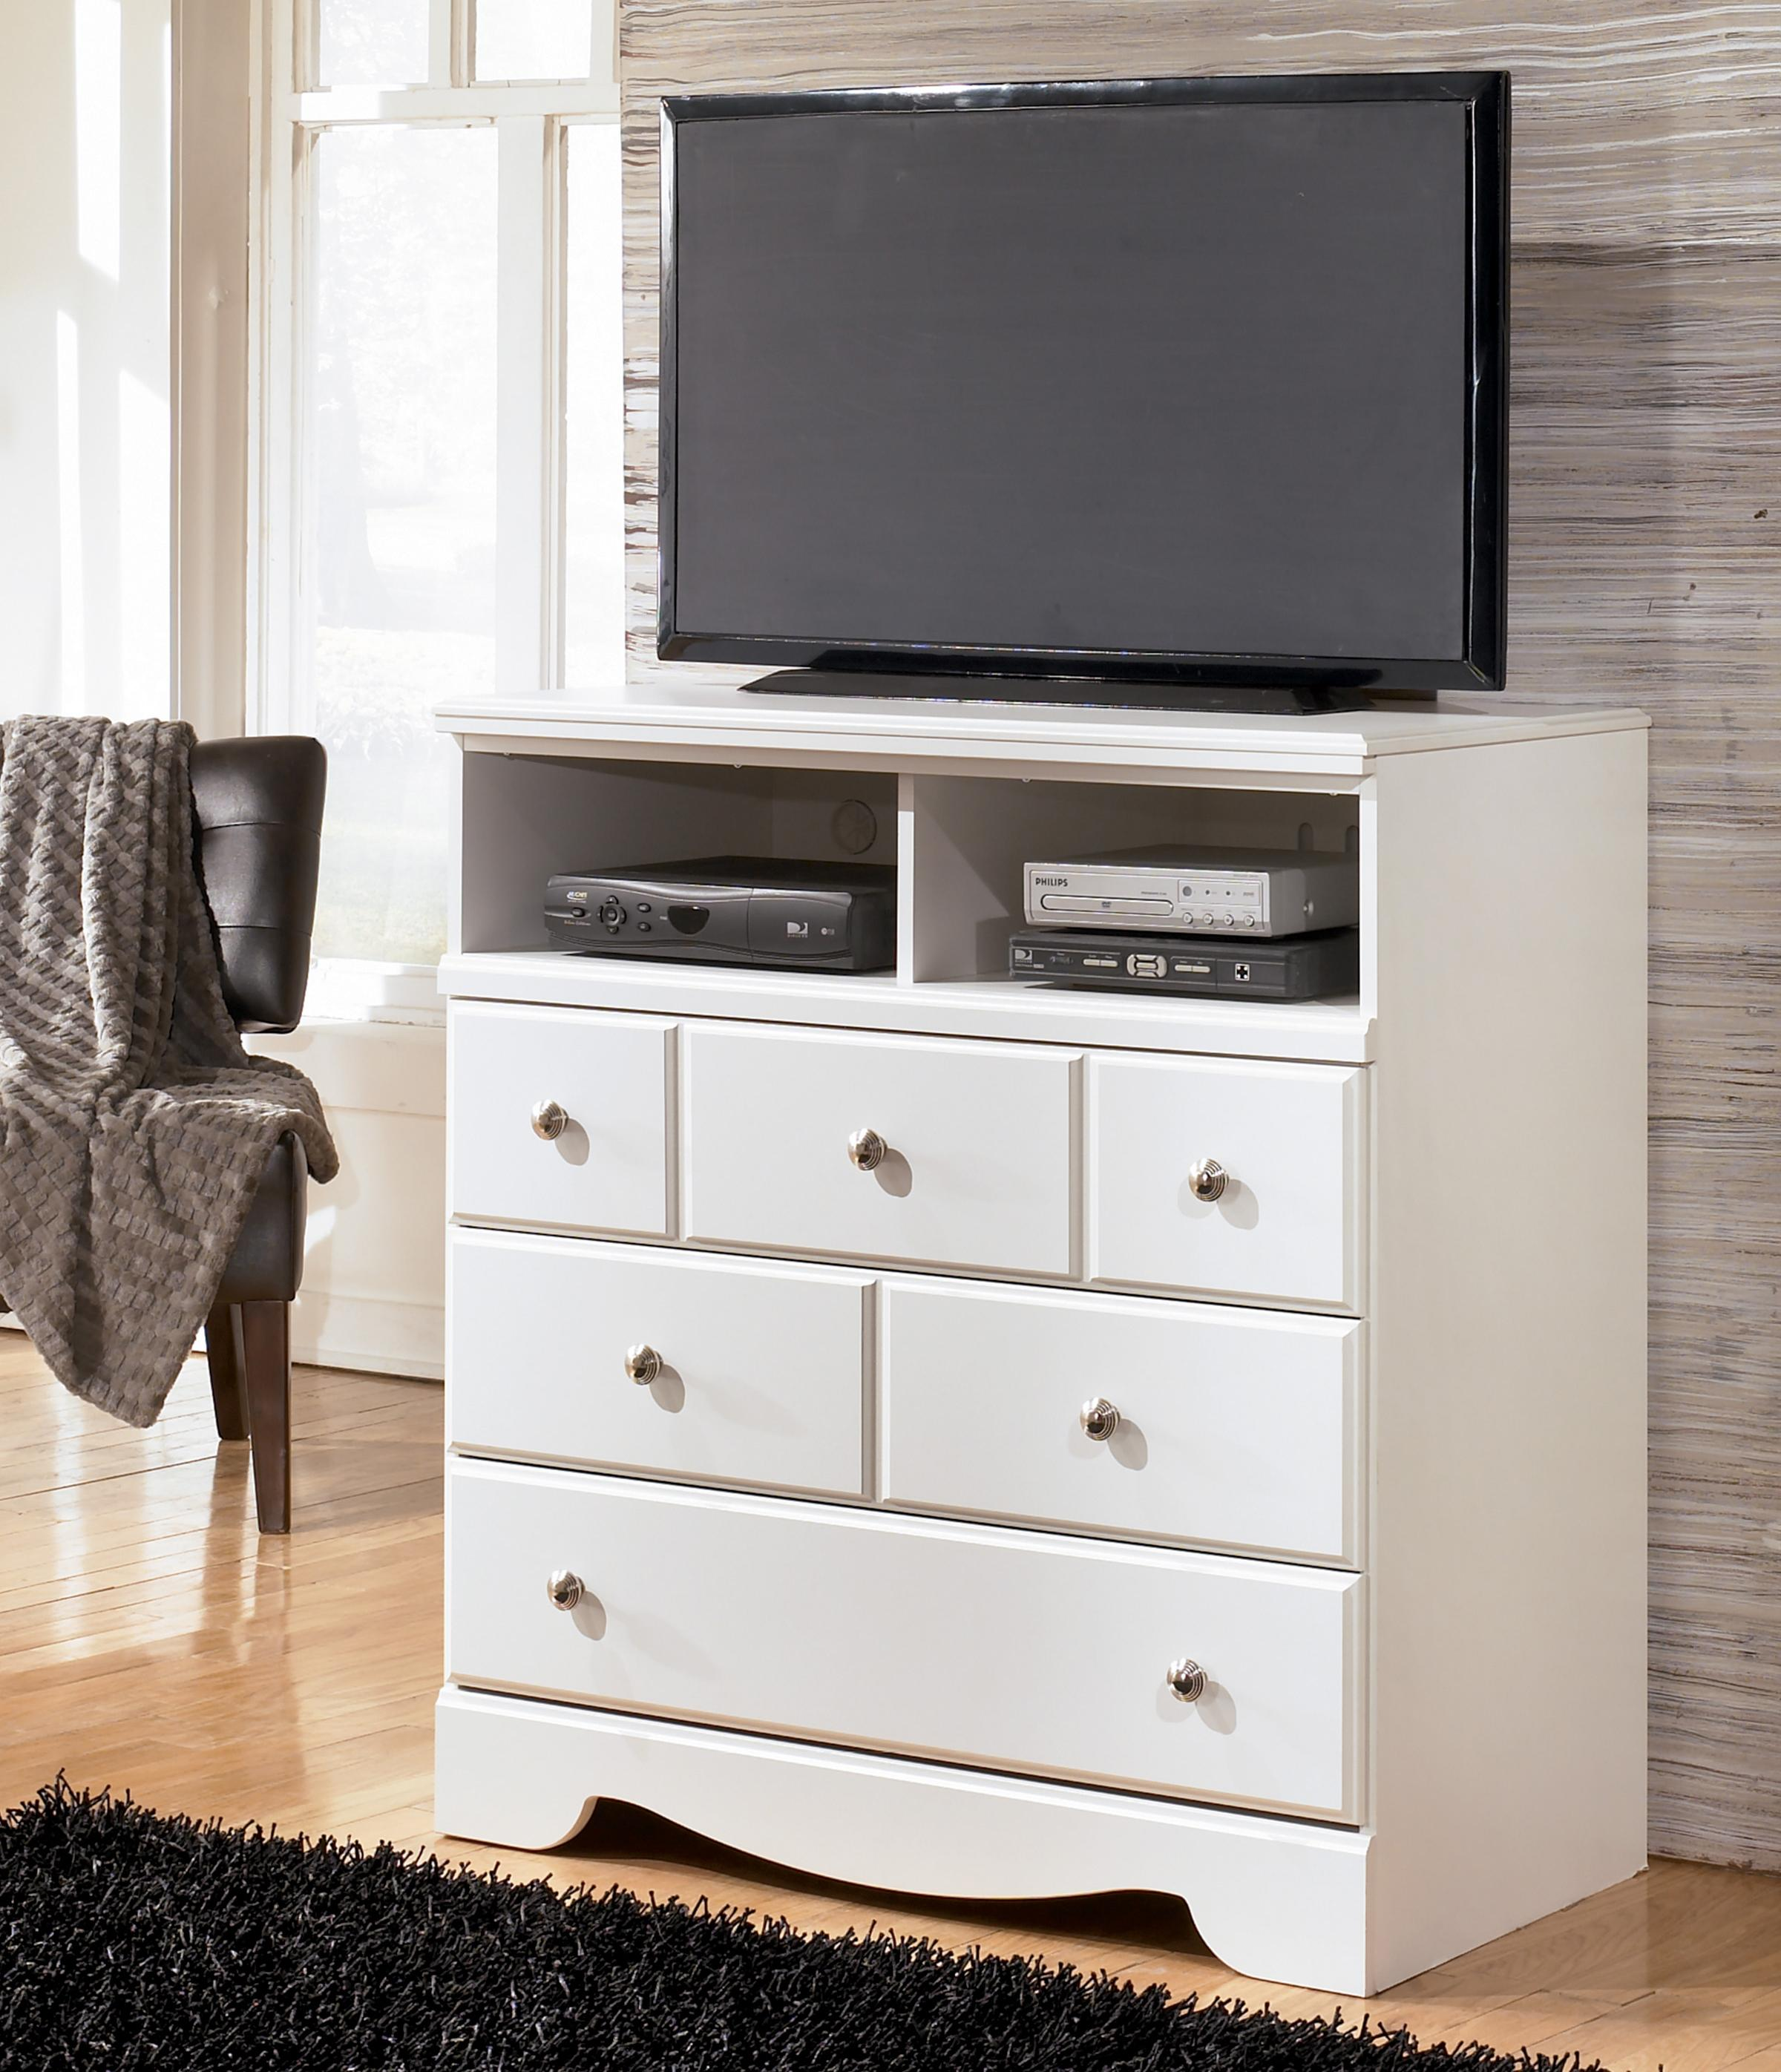 Signature Design by Ashley Weeki 3 Drawer Media Chest - Item Number: B270-39